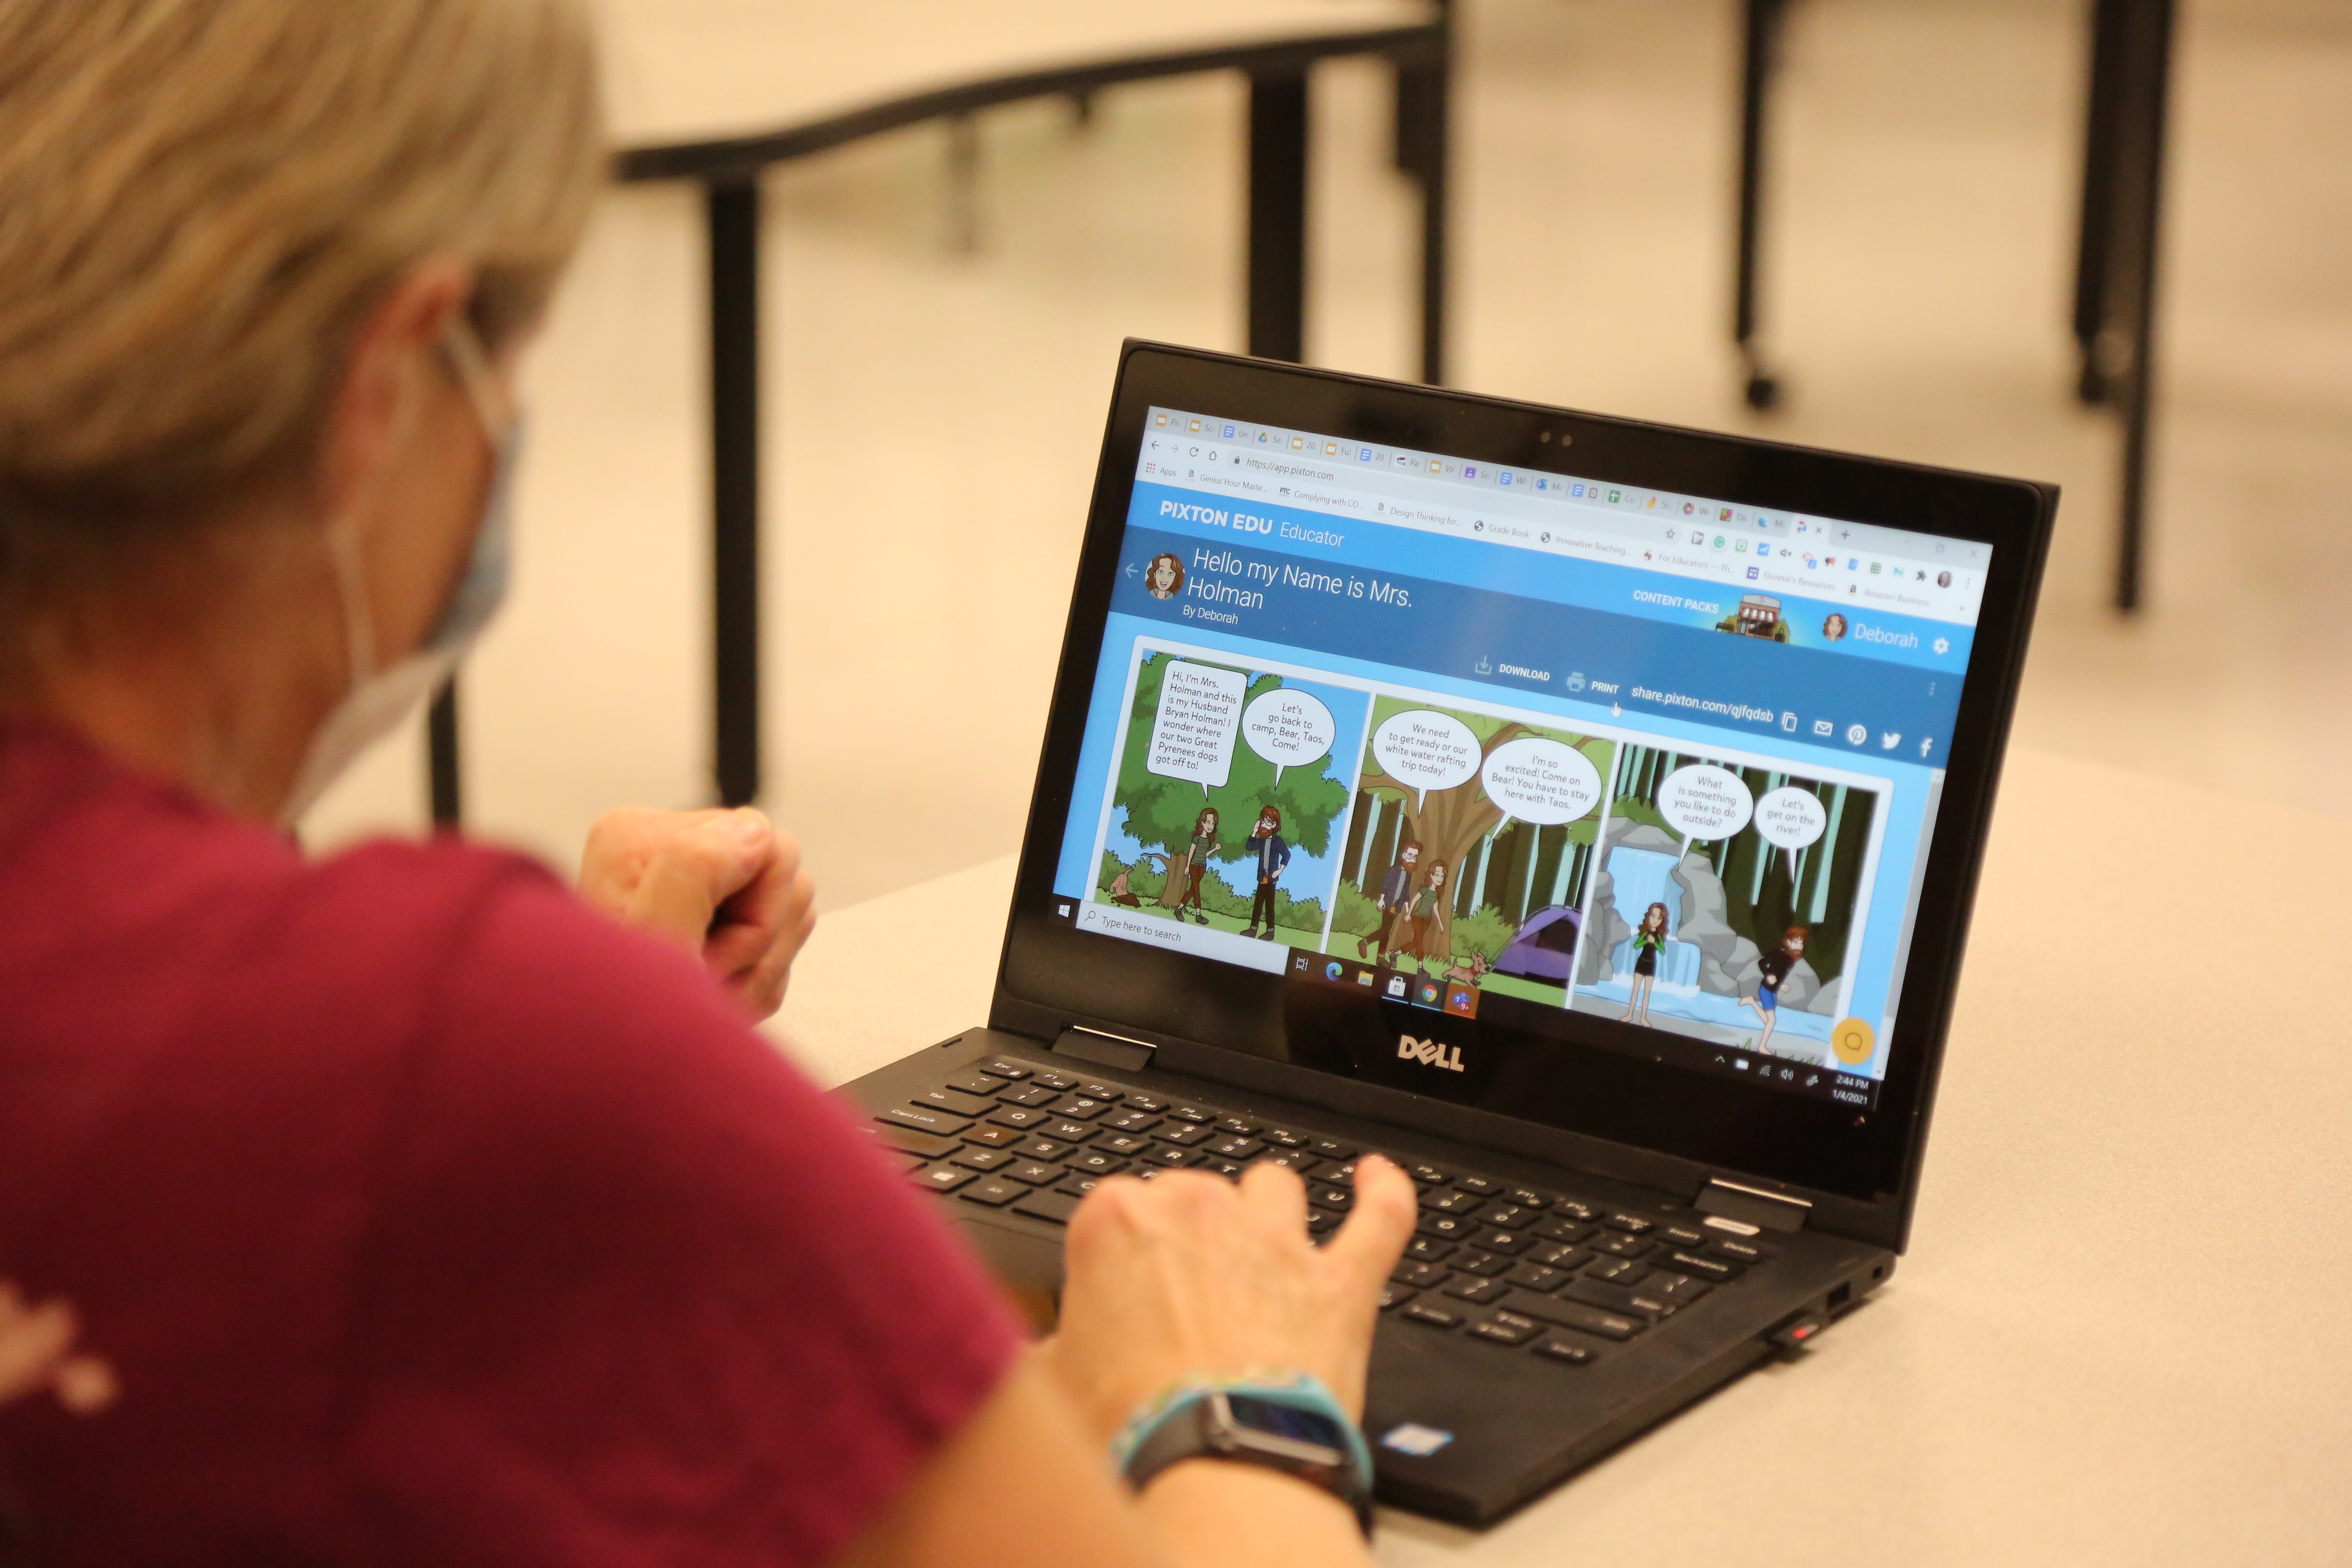 A teacher uses her laptop to present information.